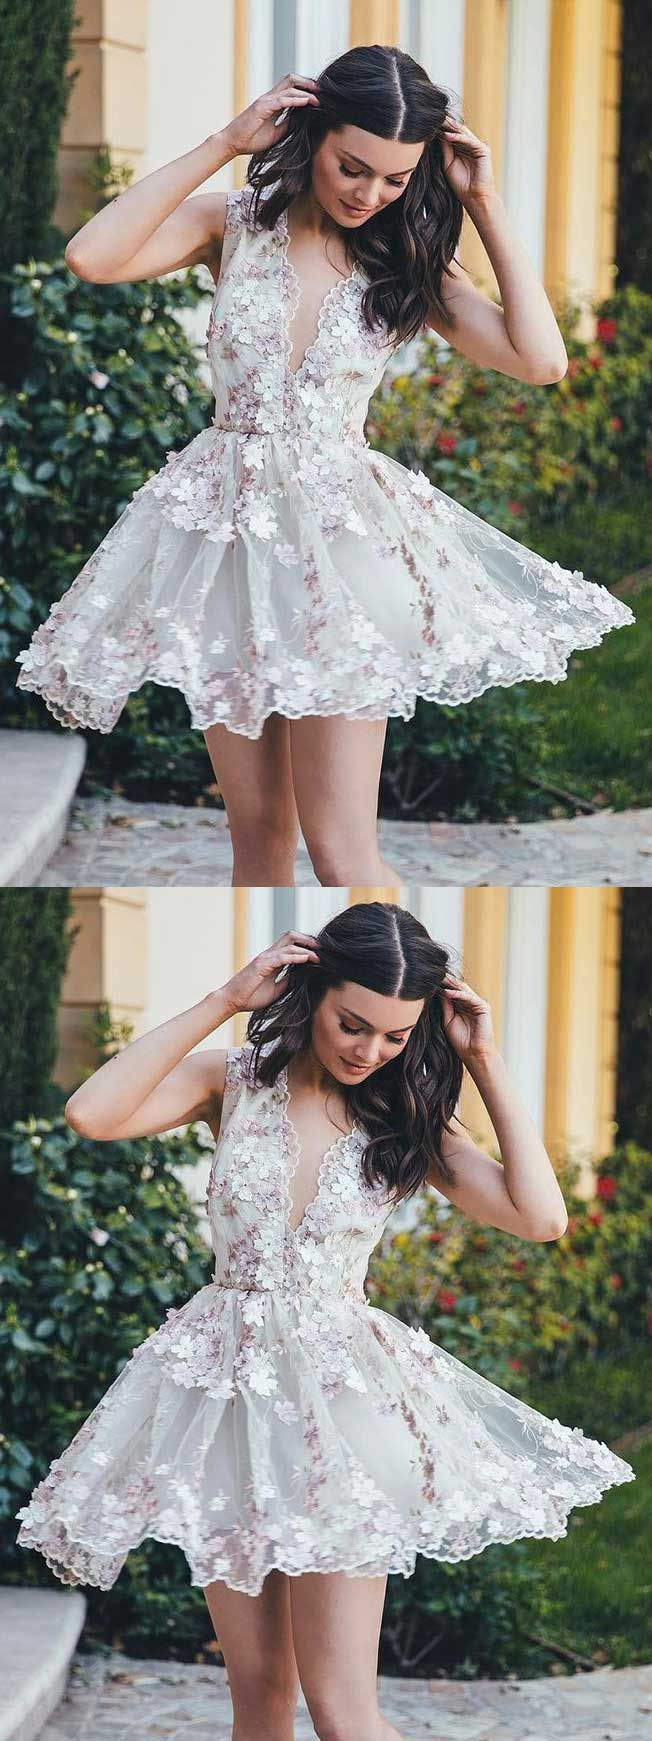 Romantic homecoming dresses shortshort prom dresses with lace